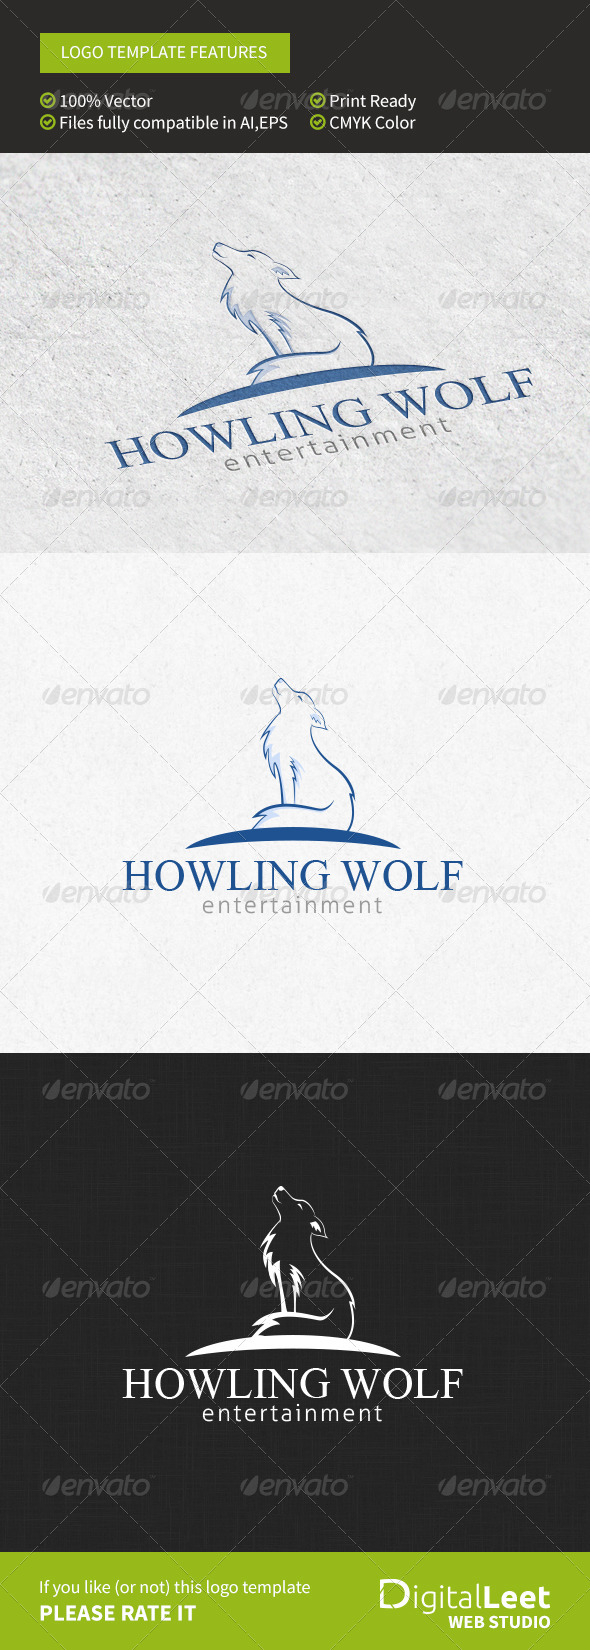 GraphicRiver Howling Wolf Entertainment Logo Template 8757970